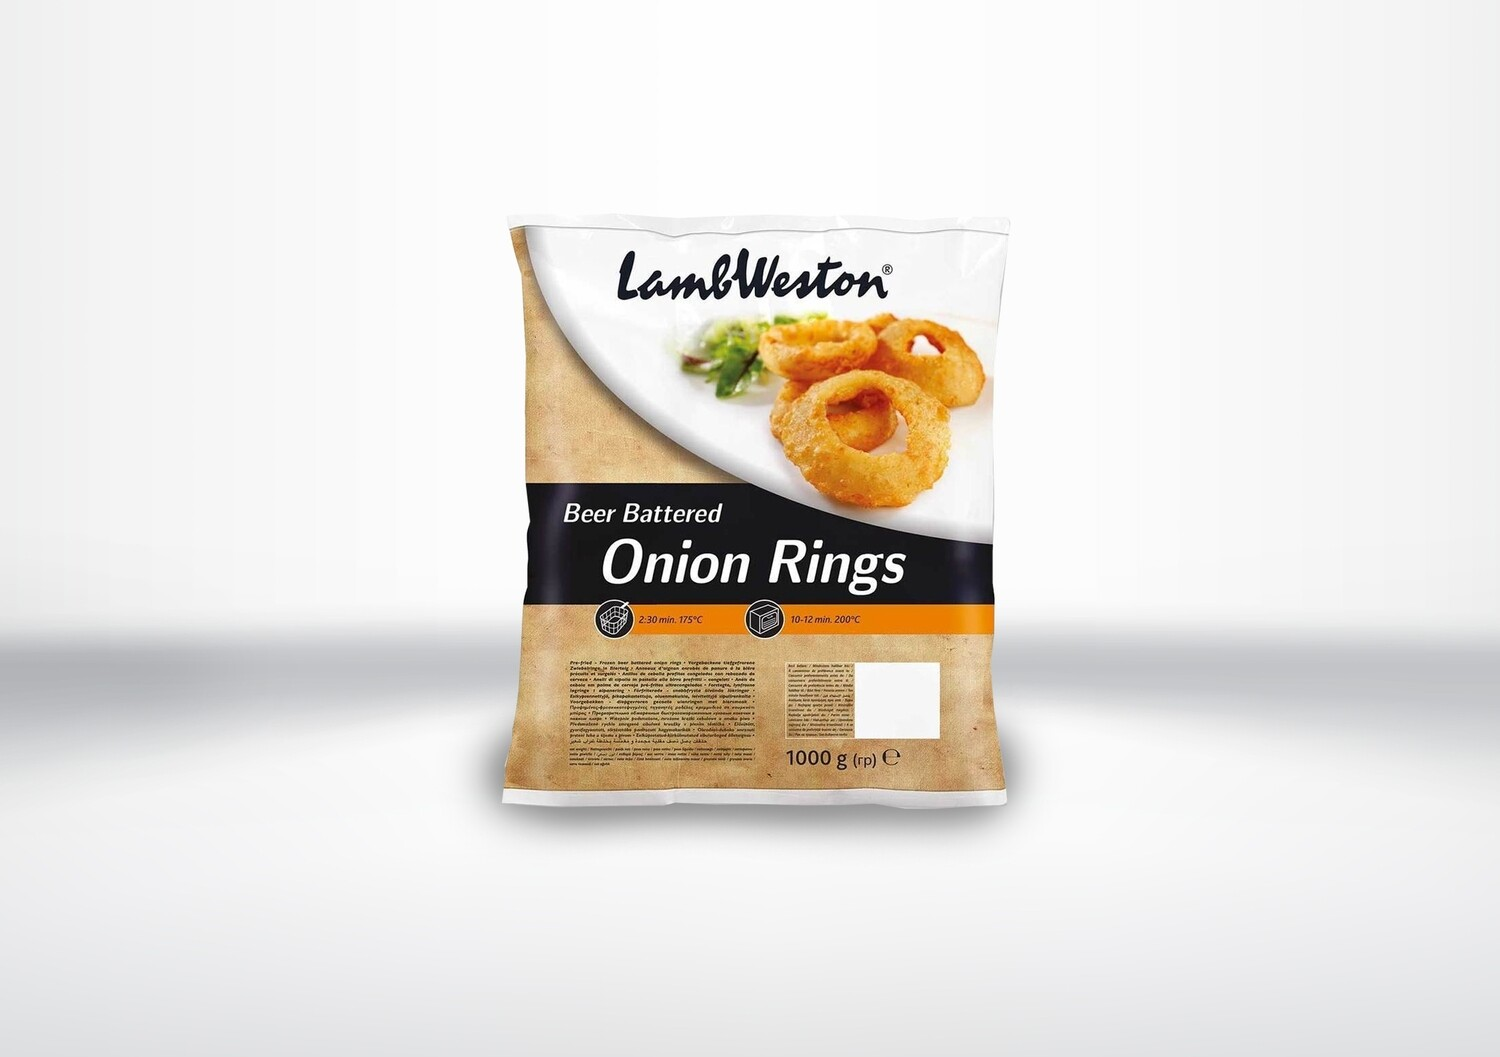 Lamb Weston Crispy Onion Rings